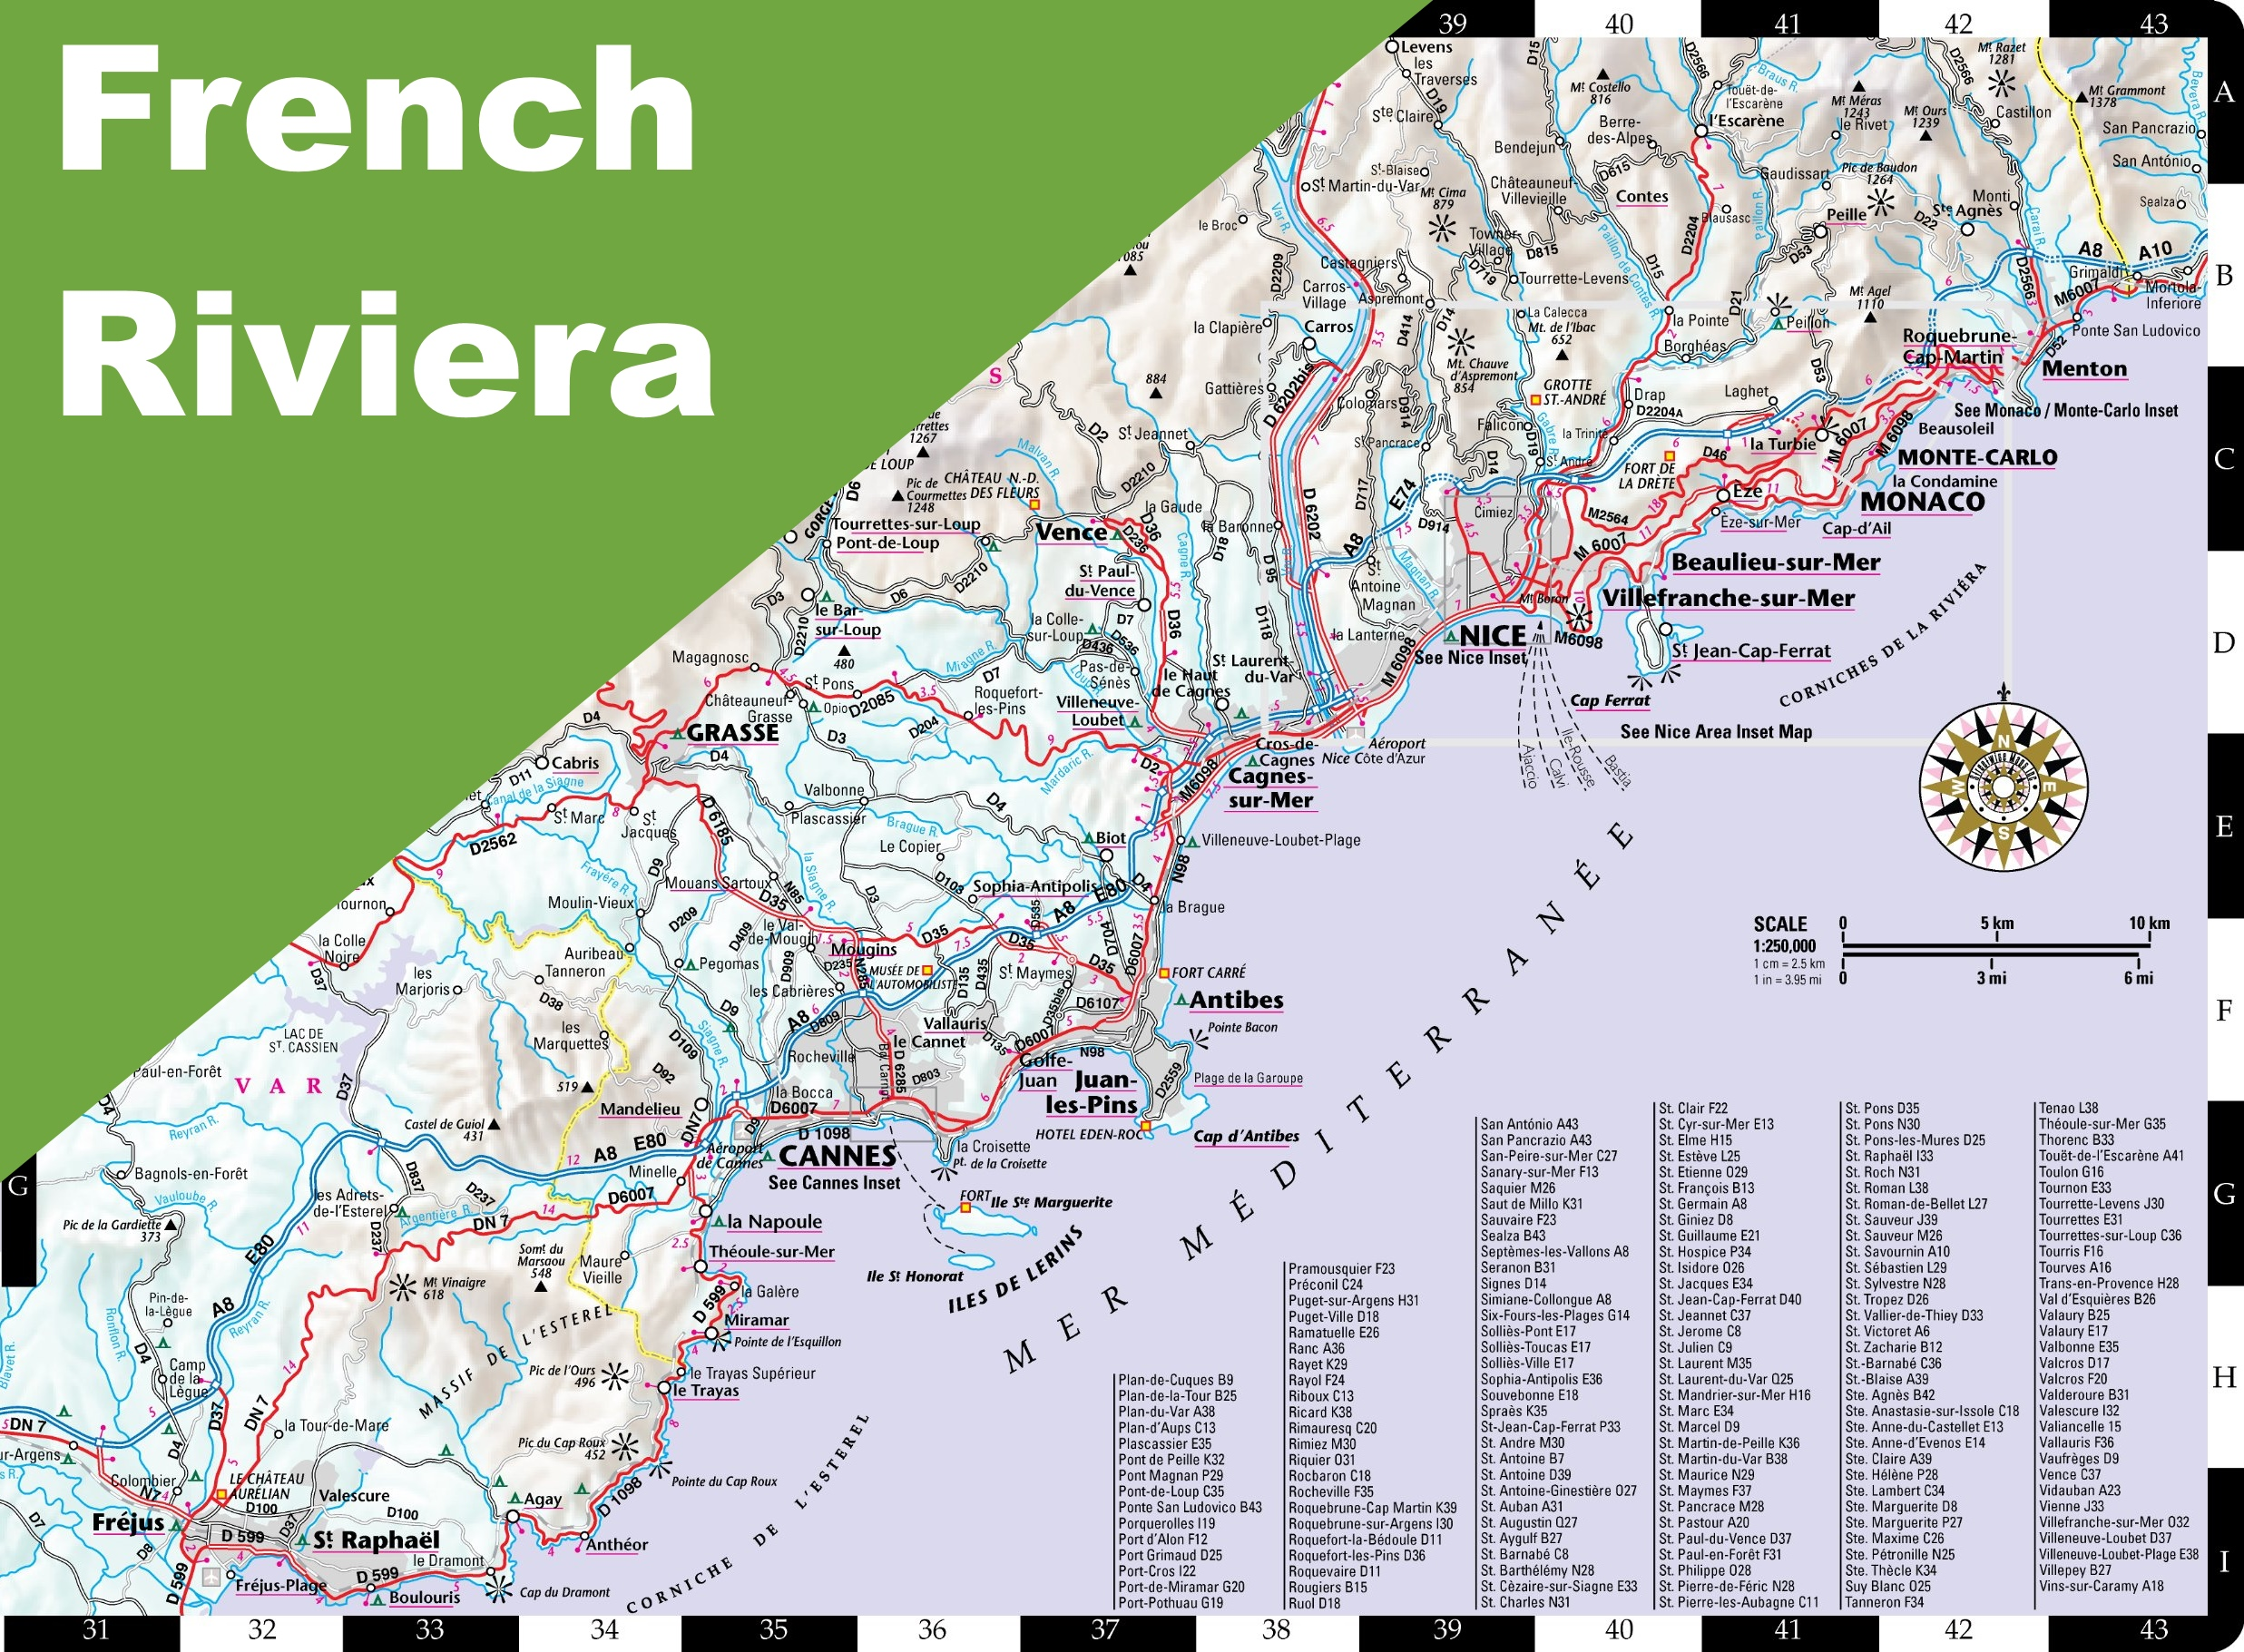 French Riviera road map